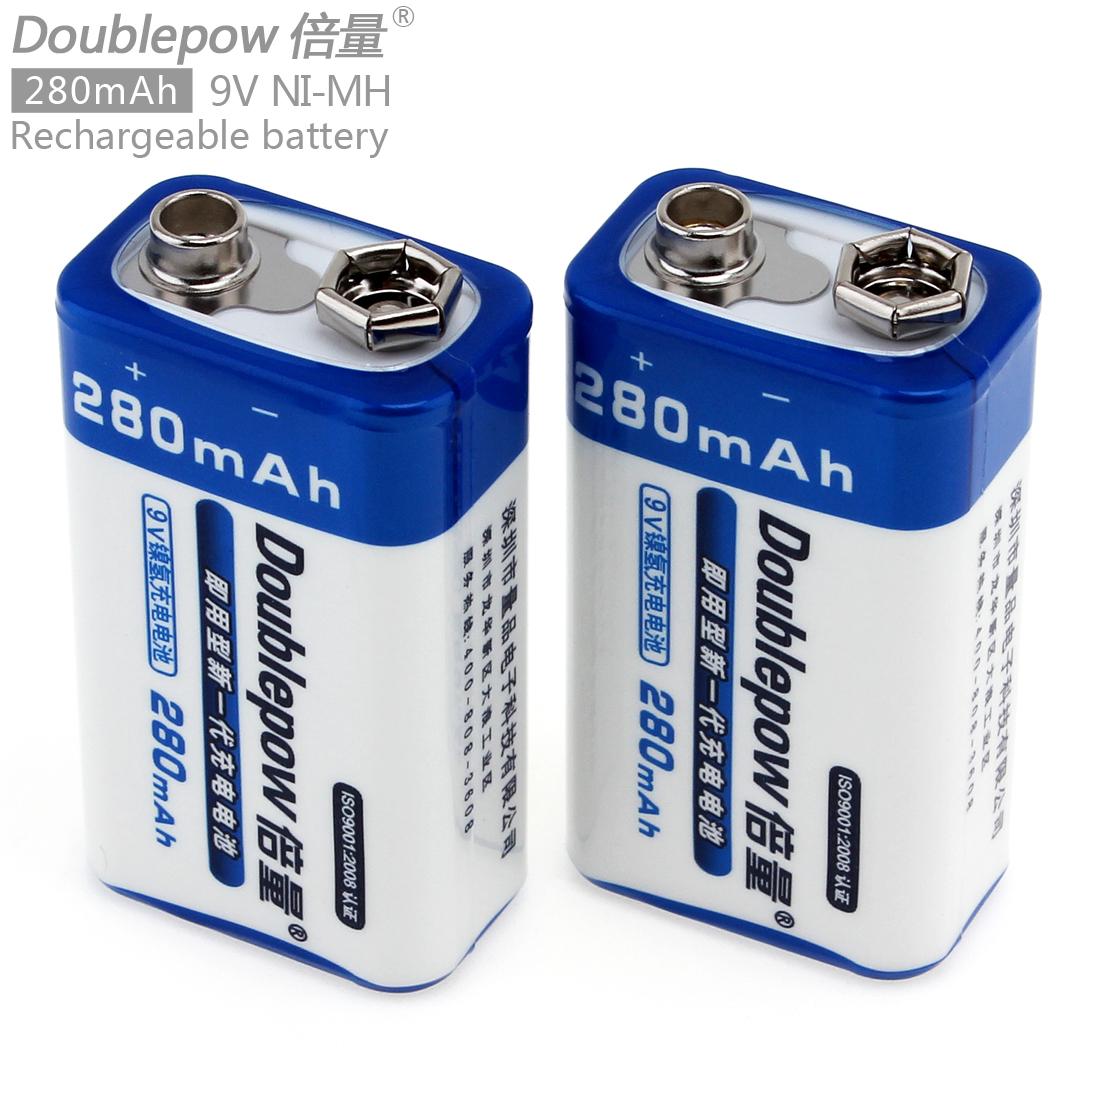 9 Volt Batterie Us 8 22 23 Off Doublepow 2pcs 9v Ni Mh 280mah Rechargeable Battery Nimh 9v Battery Pilhas Recarregaveis 9 Volt Battery With Storage Box In